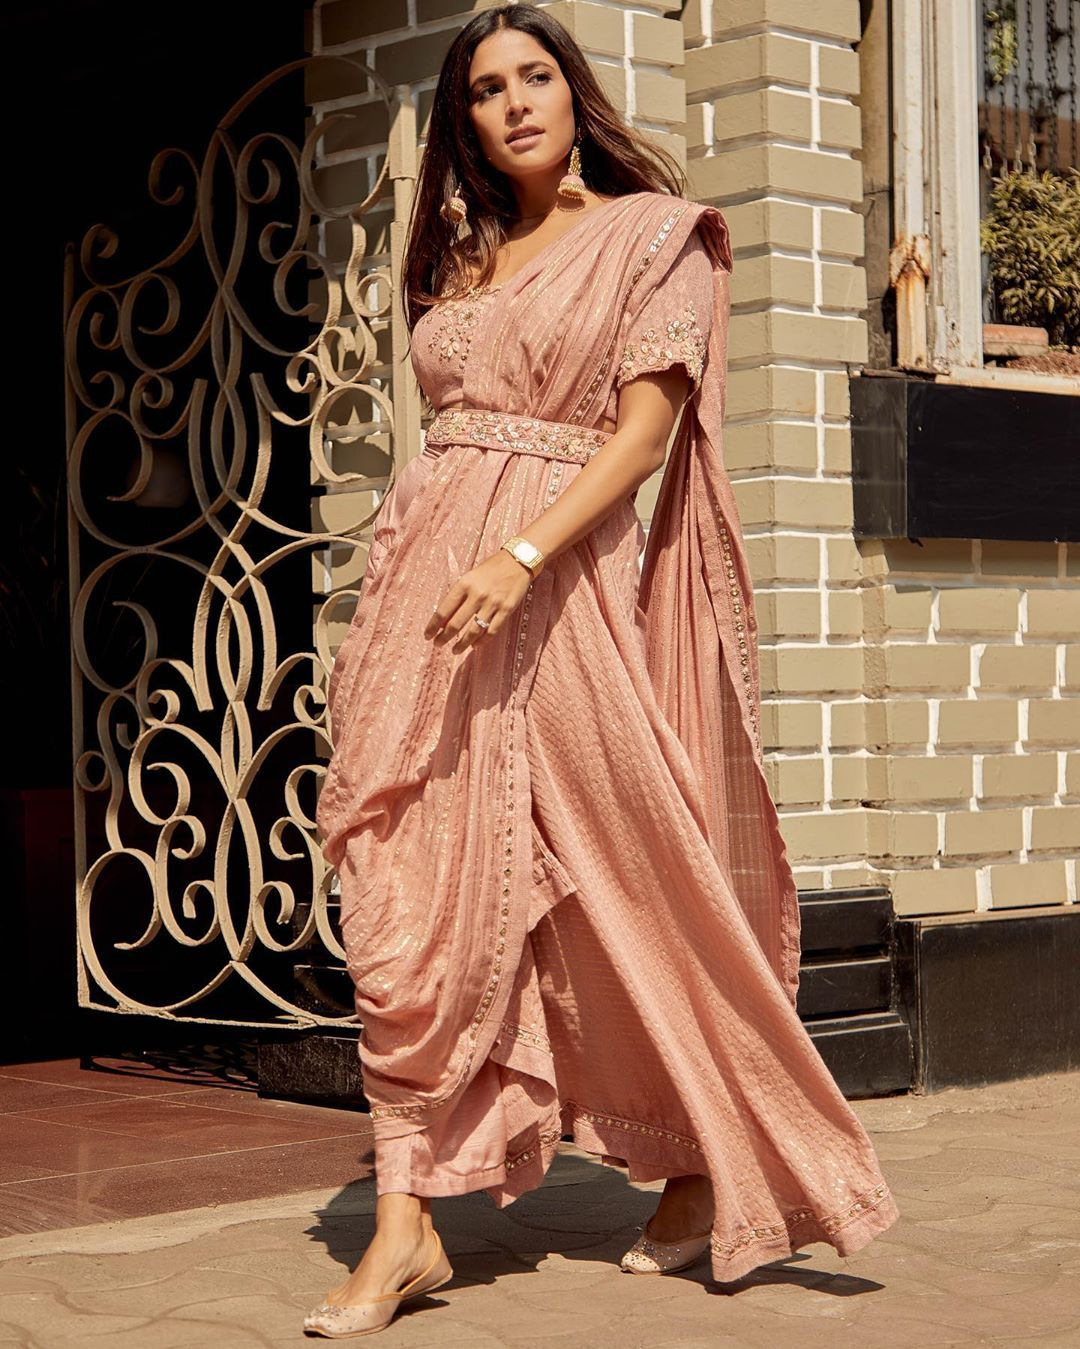 20 Best Indian Bridesmaids Outfits Ideas 2020 Indian Bridesmaid Wedding Guest Outfit Inspirations In 2020 Indian Bridesmaid Dresses Bollywood Dress Indian Bridesmaids